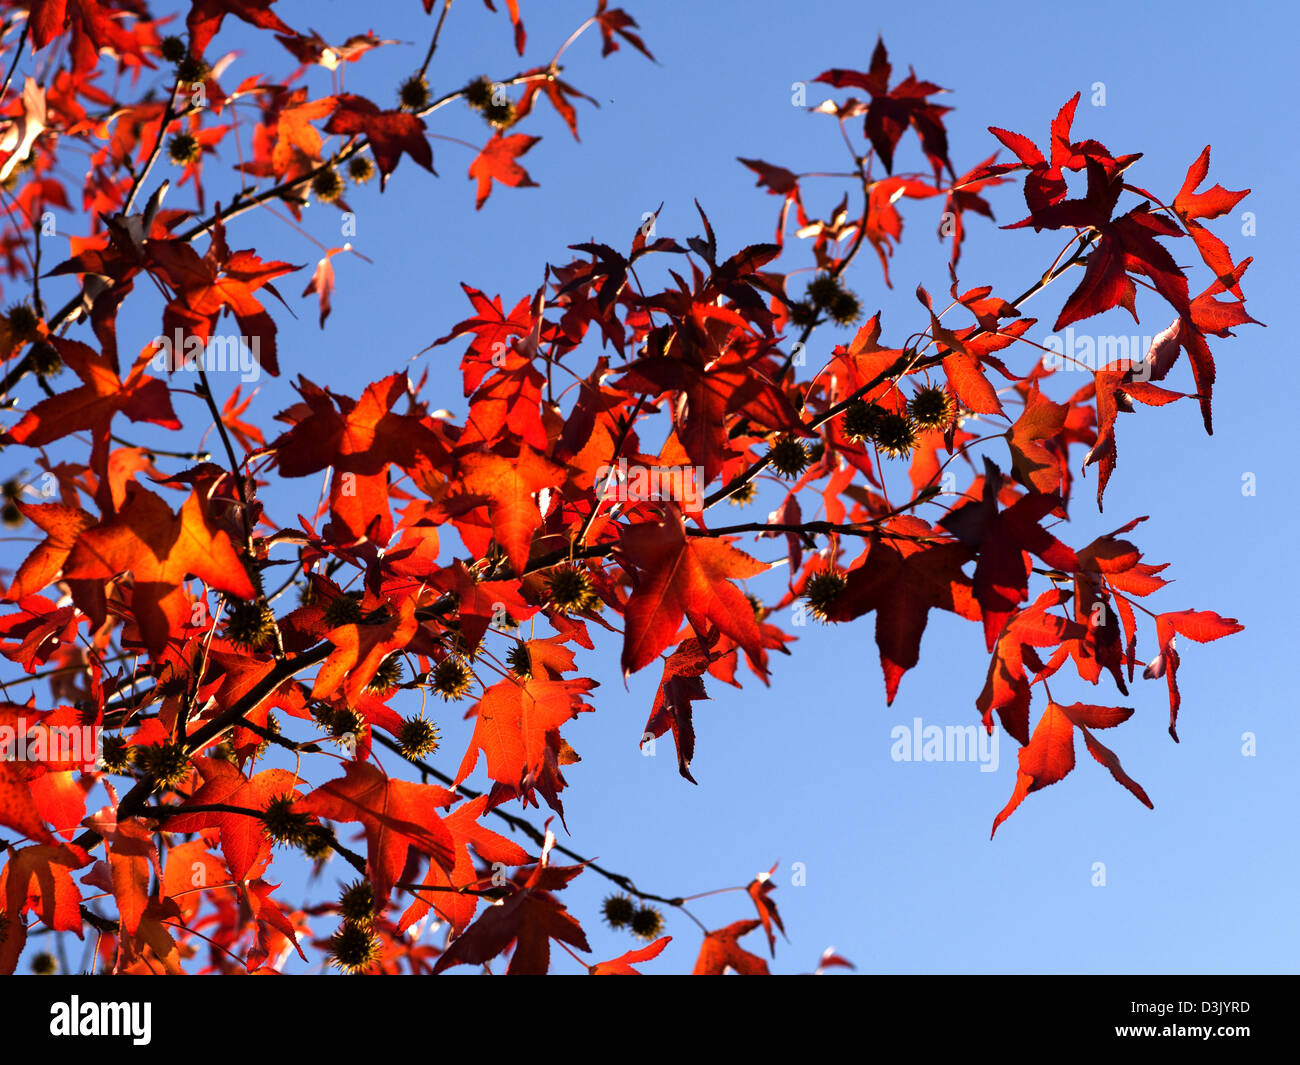 red leaves against a blue sky in autumn in Italy - Stock Image